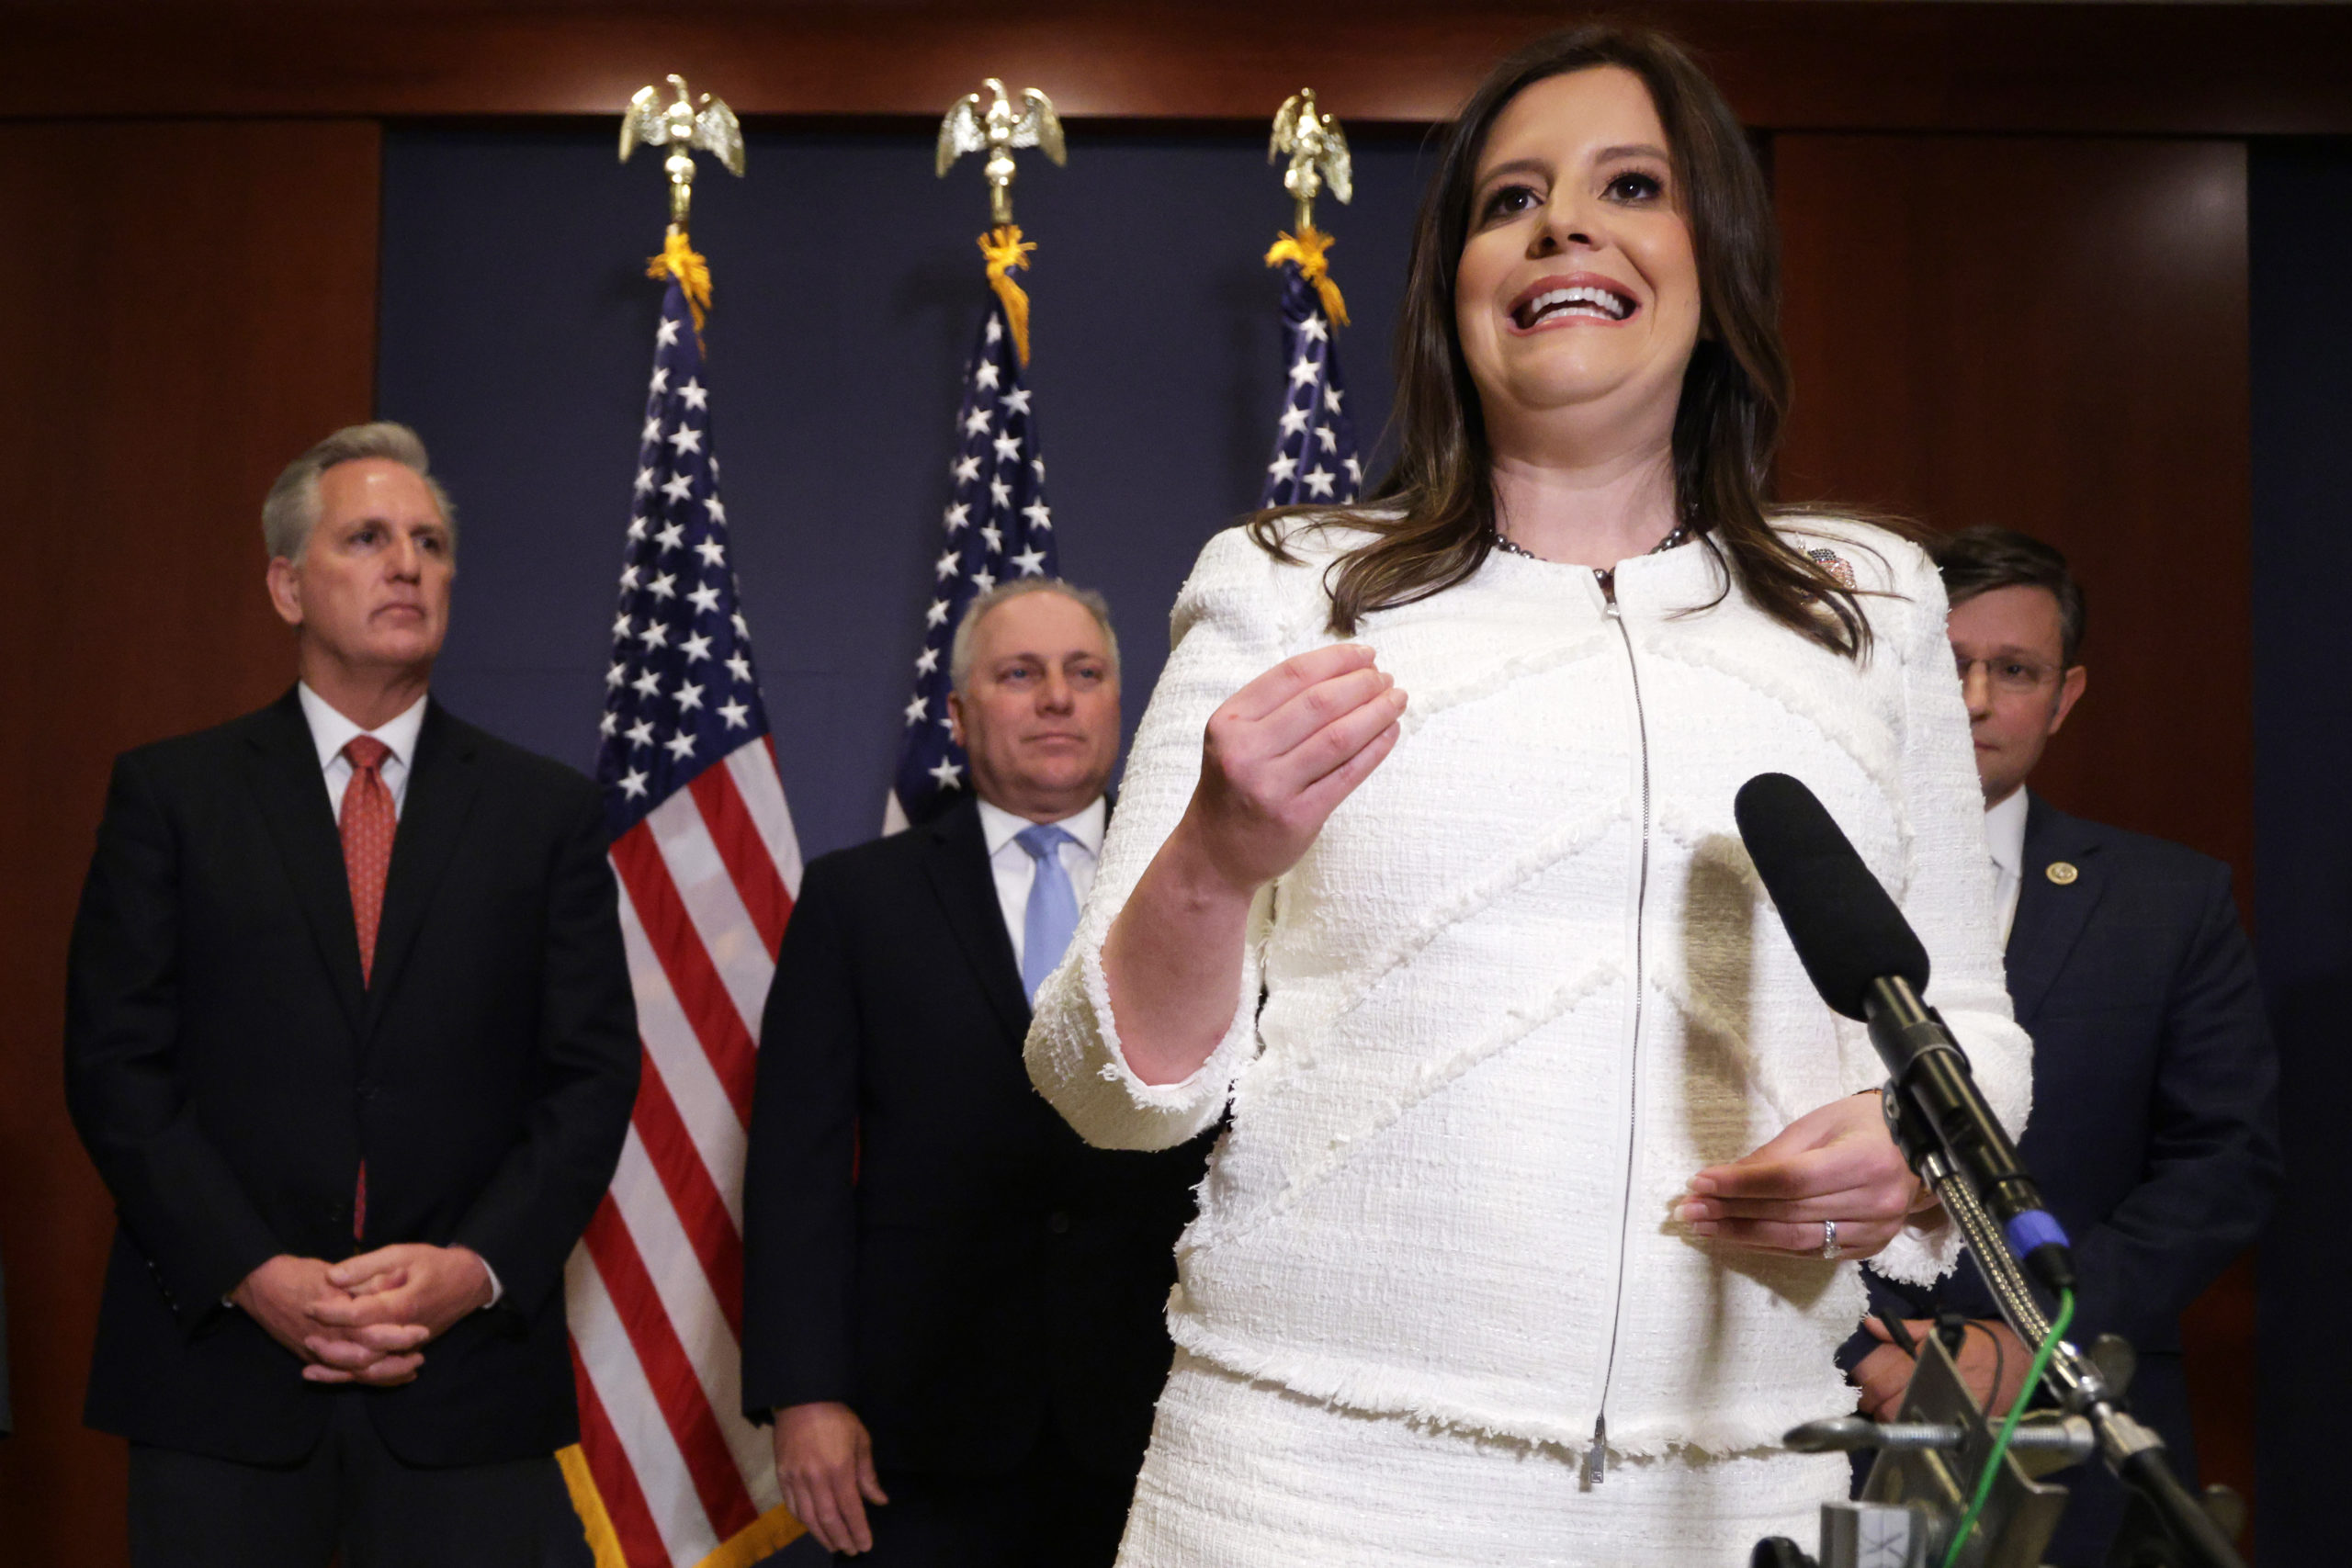 Rep. Elise Stefanik speaks to members of the press on Friday. (Alex Wong/Getty Images)